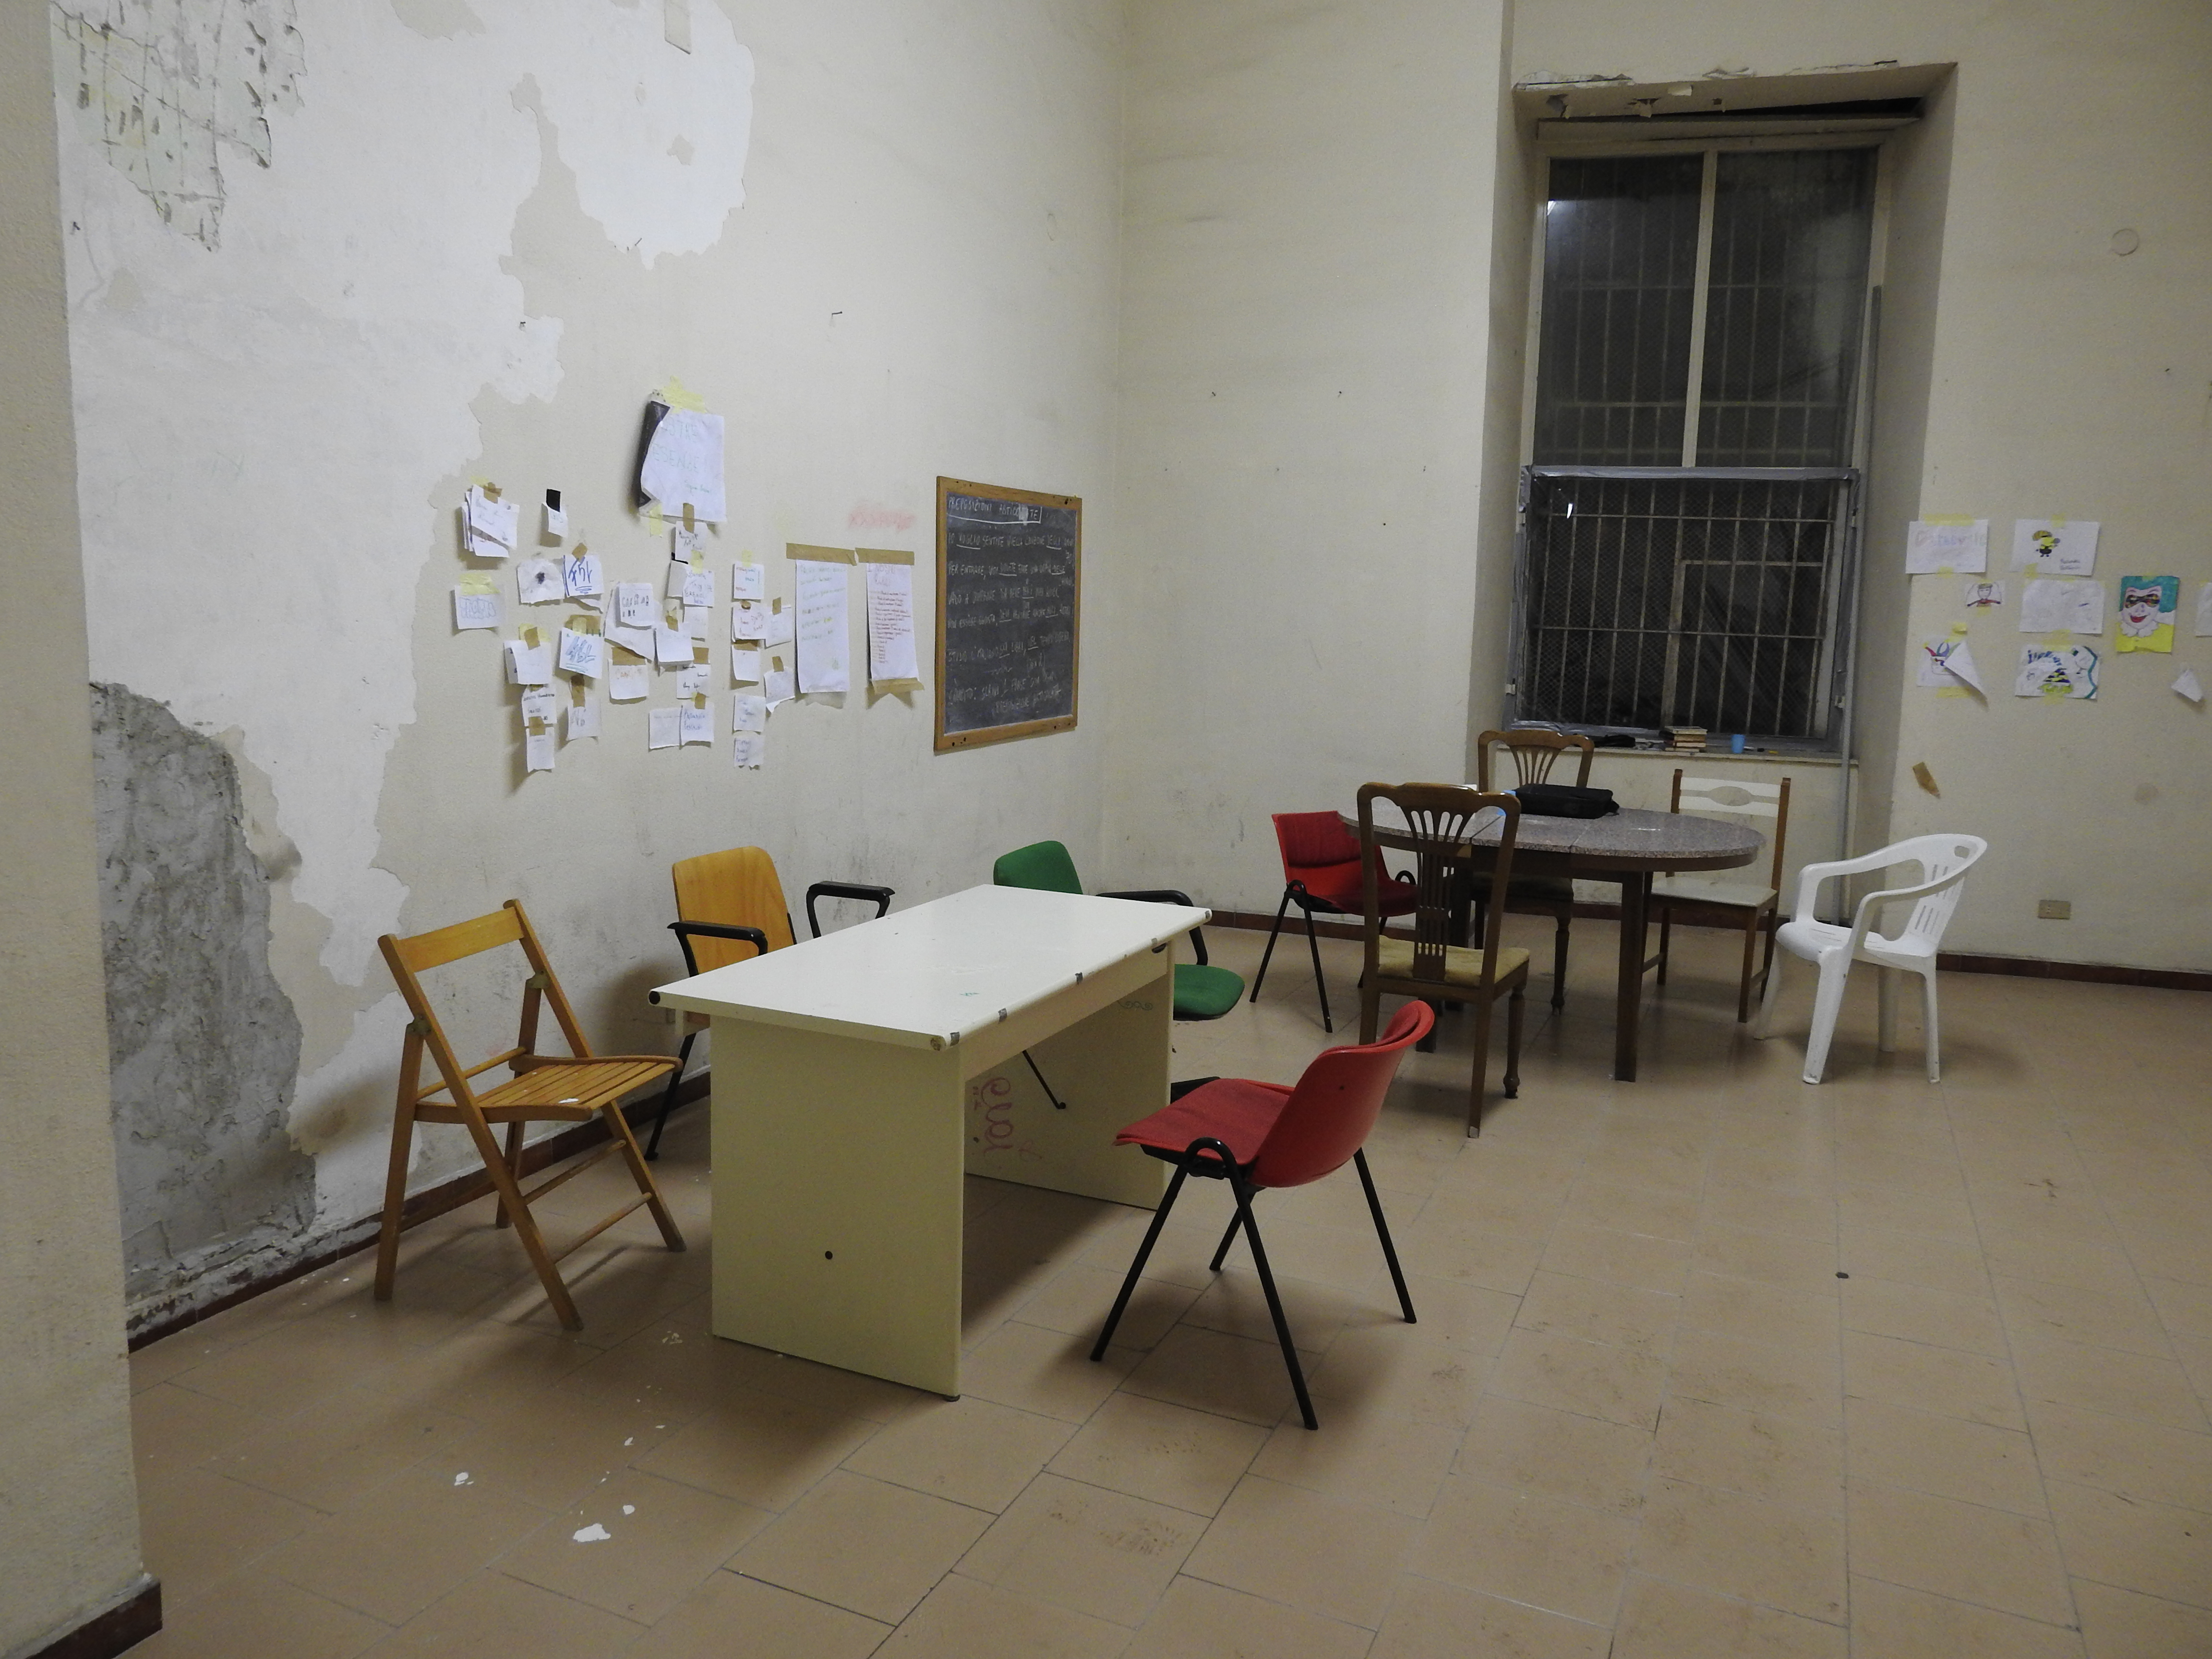 The occupation of the building and efforts to provide afternoon teaching for kids of the area